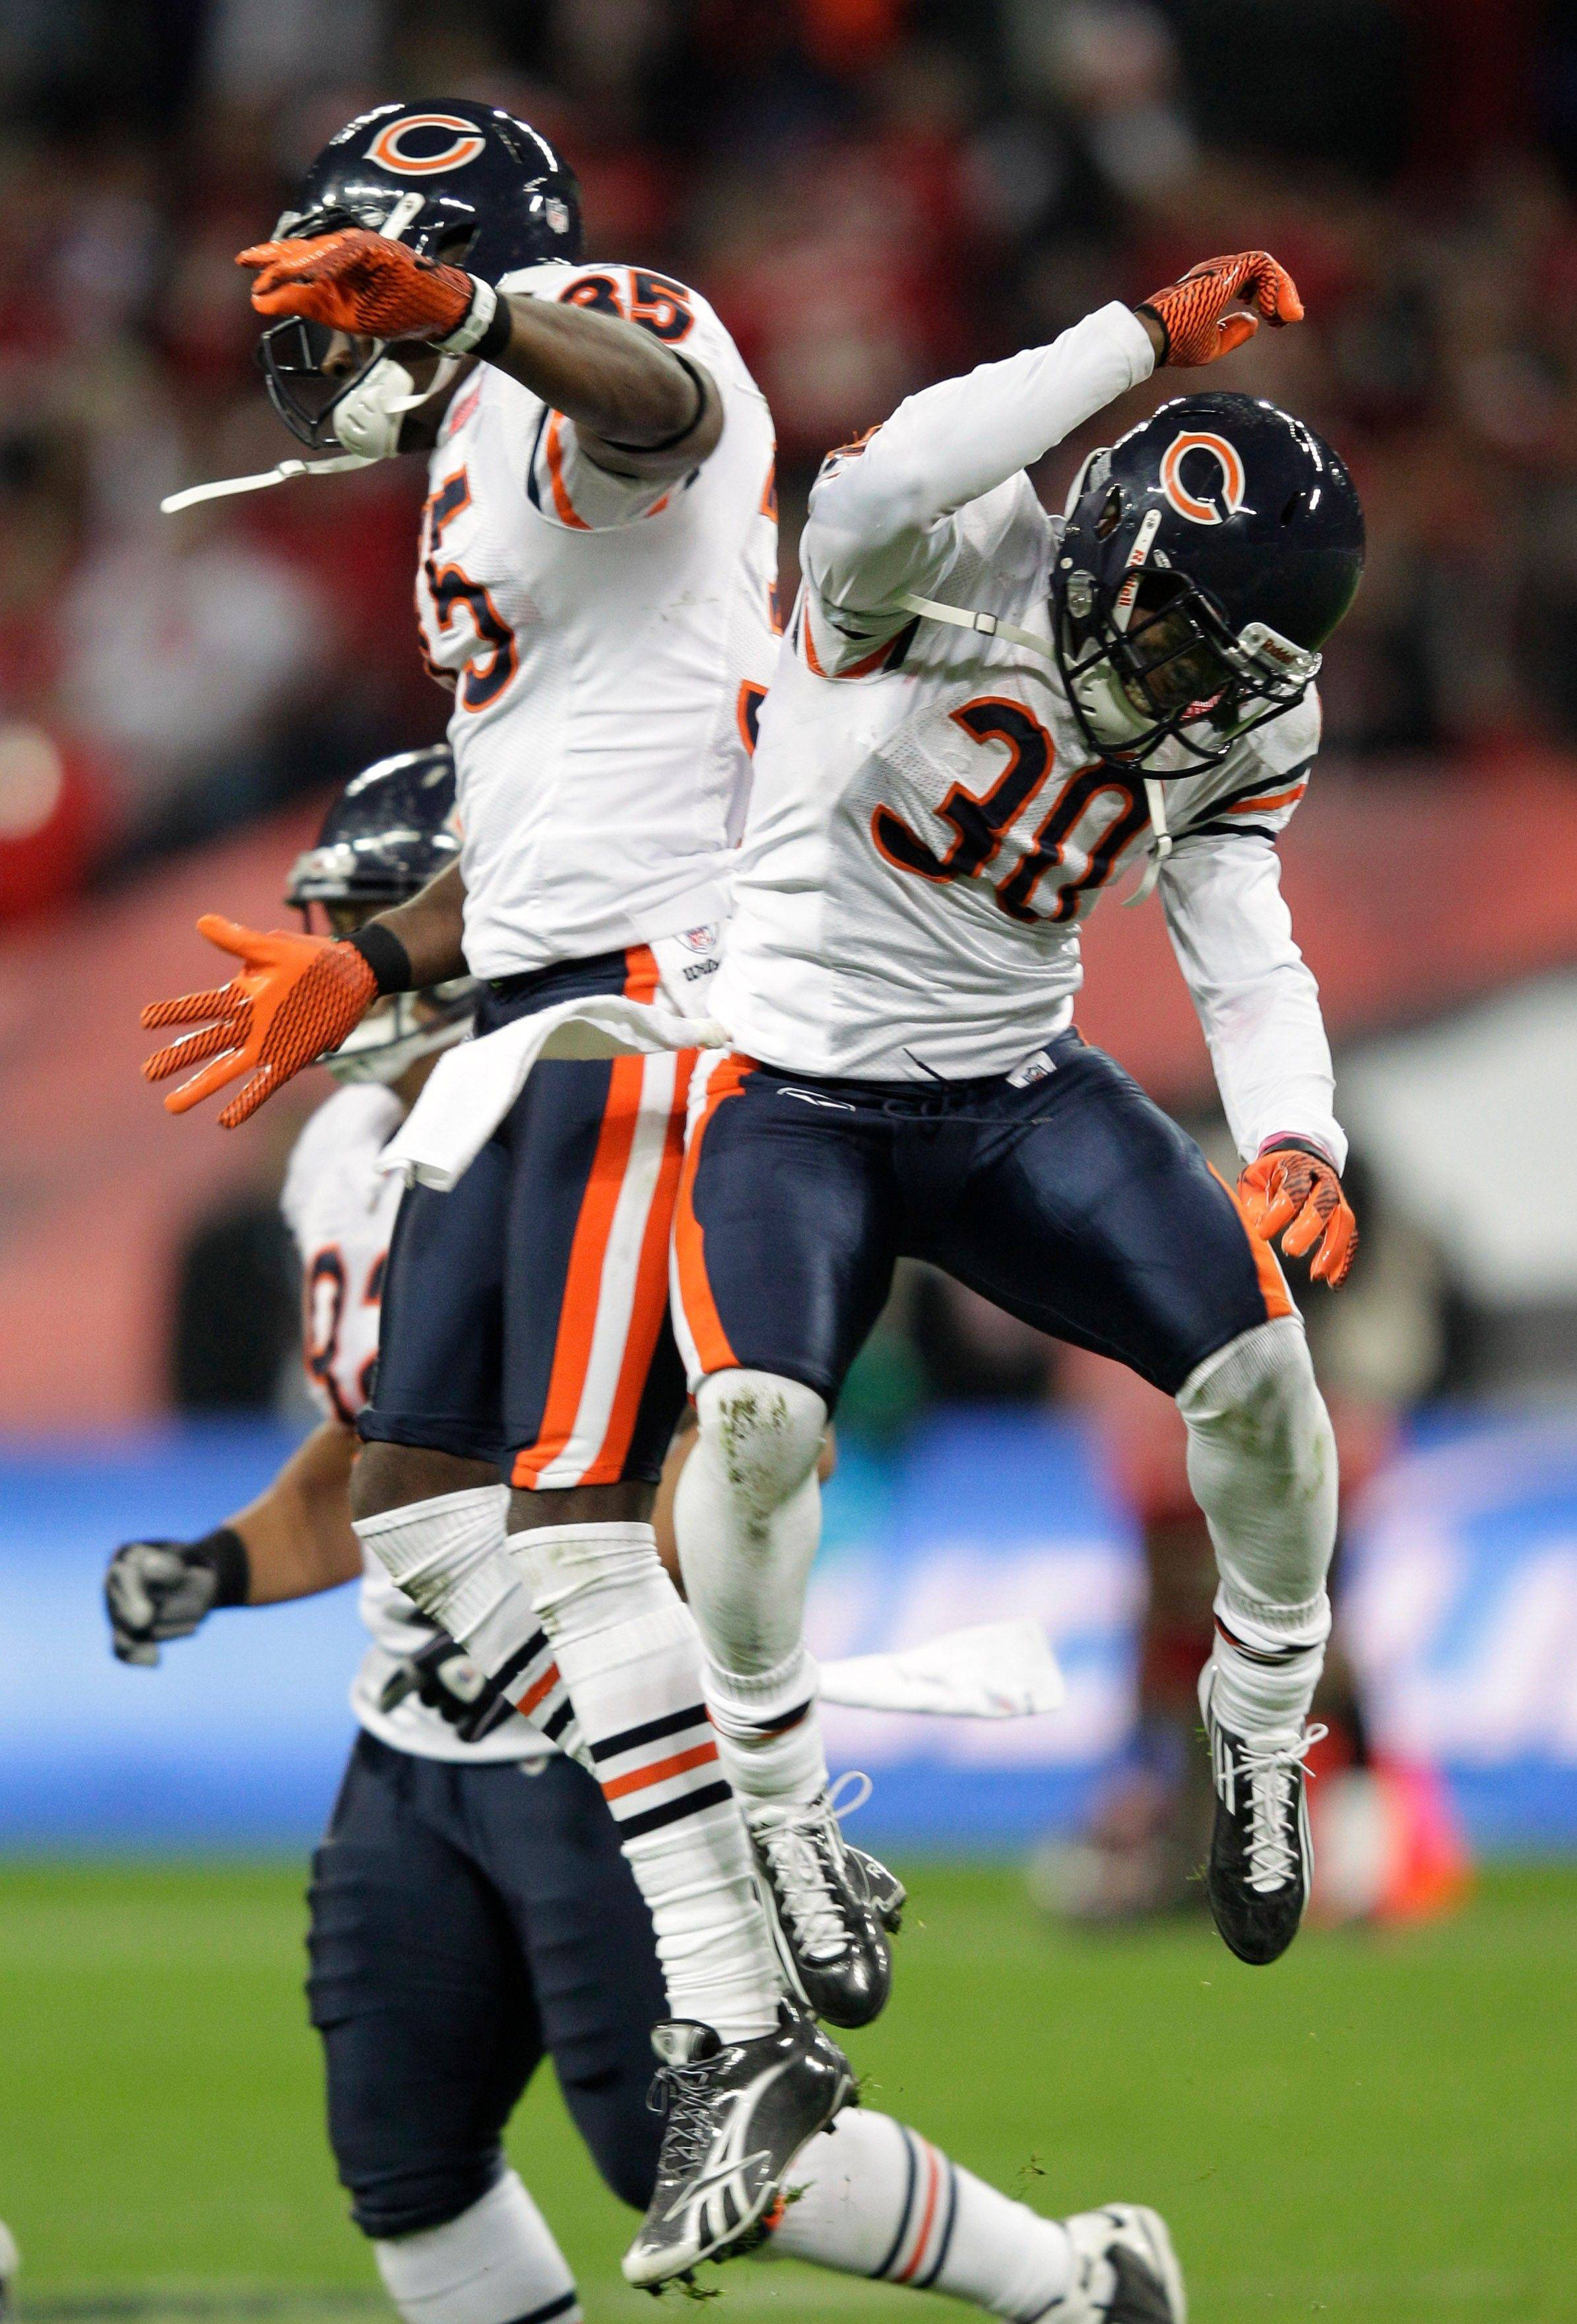 Chicago Bears defensive back D.J. Moore (30) celebrates catching an interception with teammate Zack Bowman during the second half.